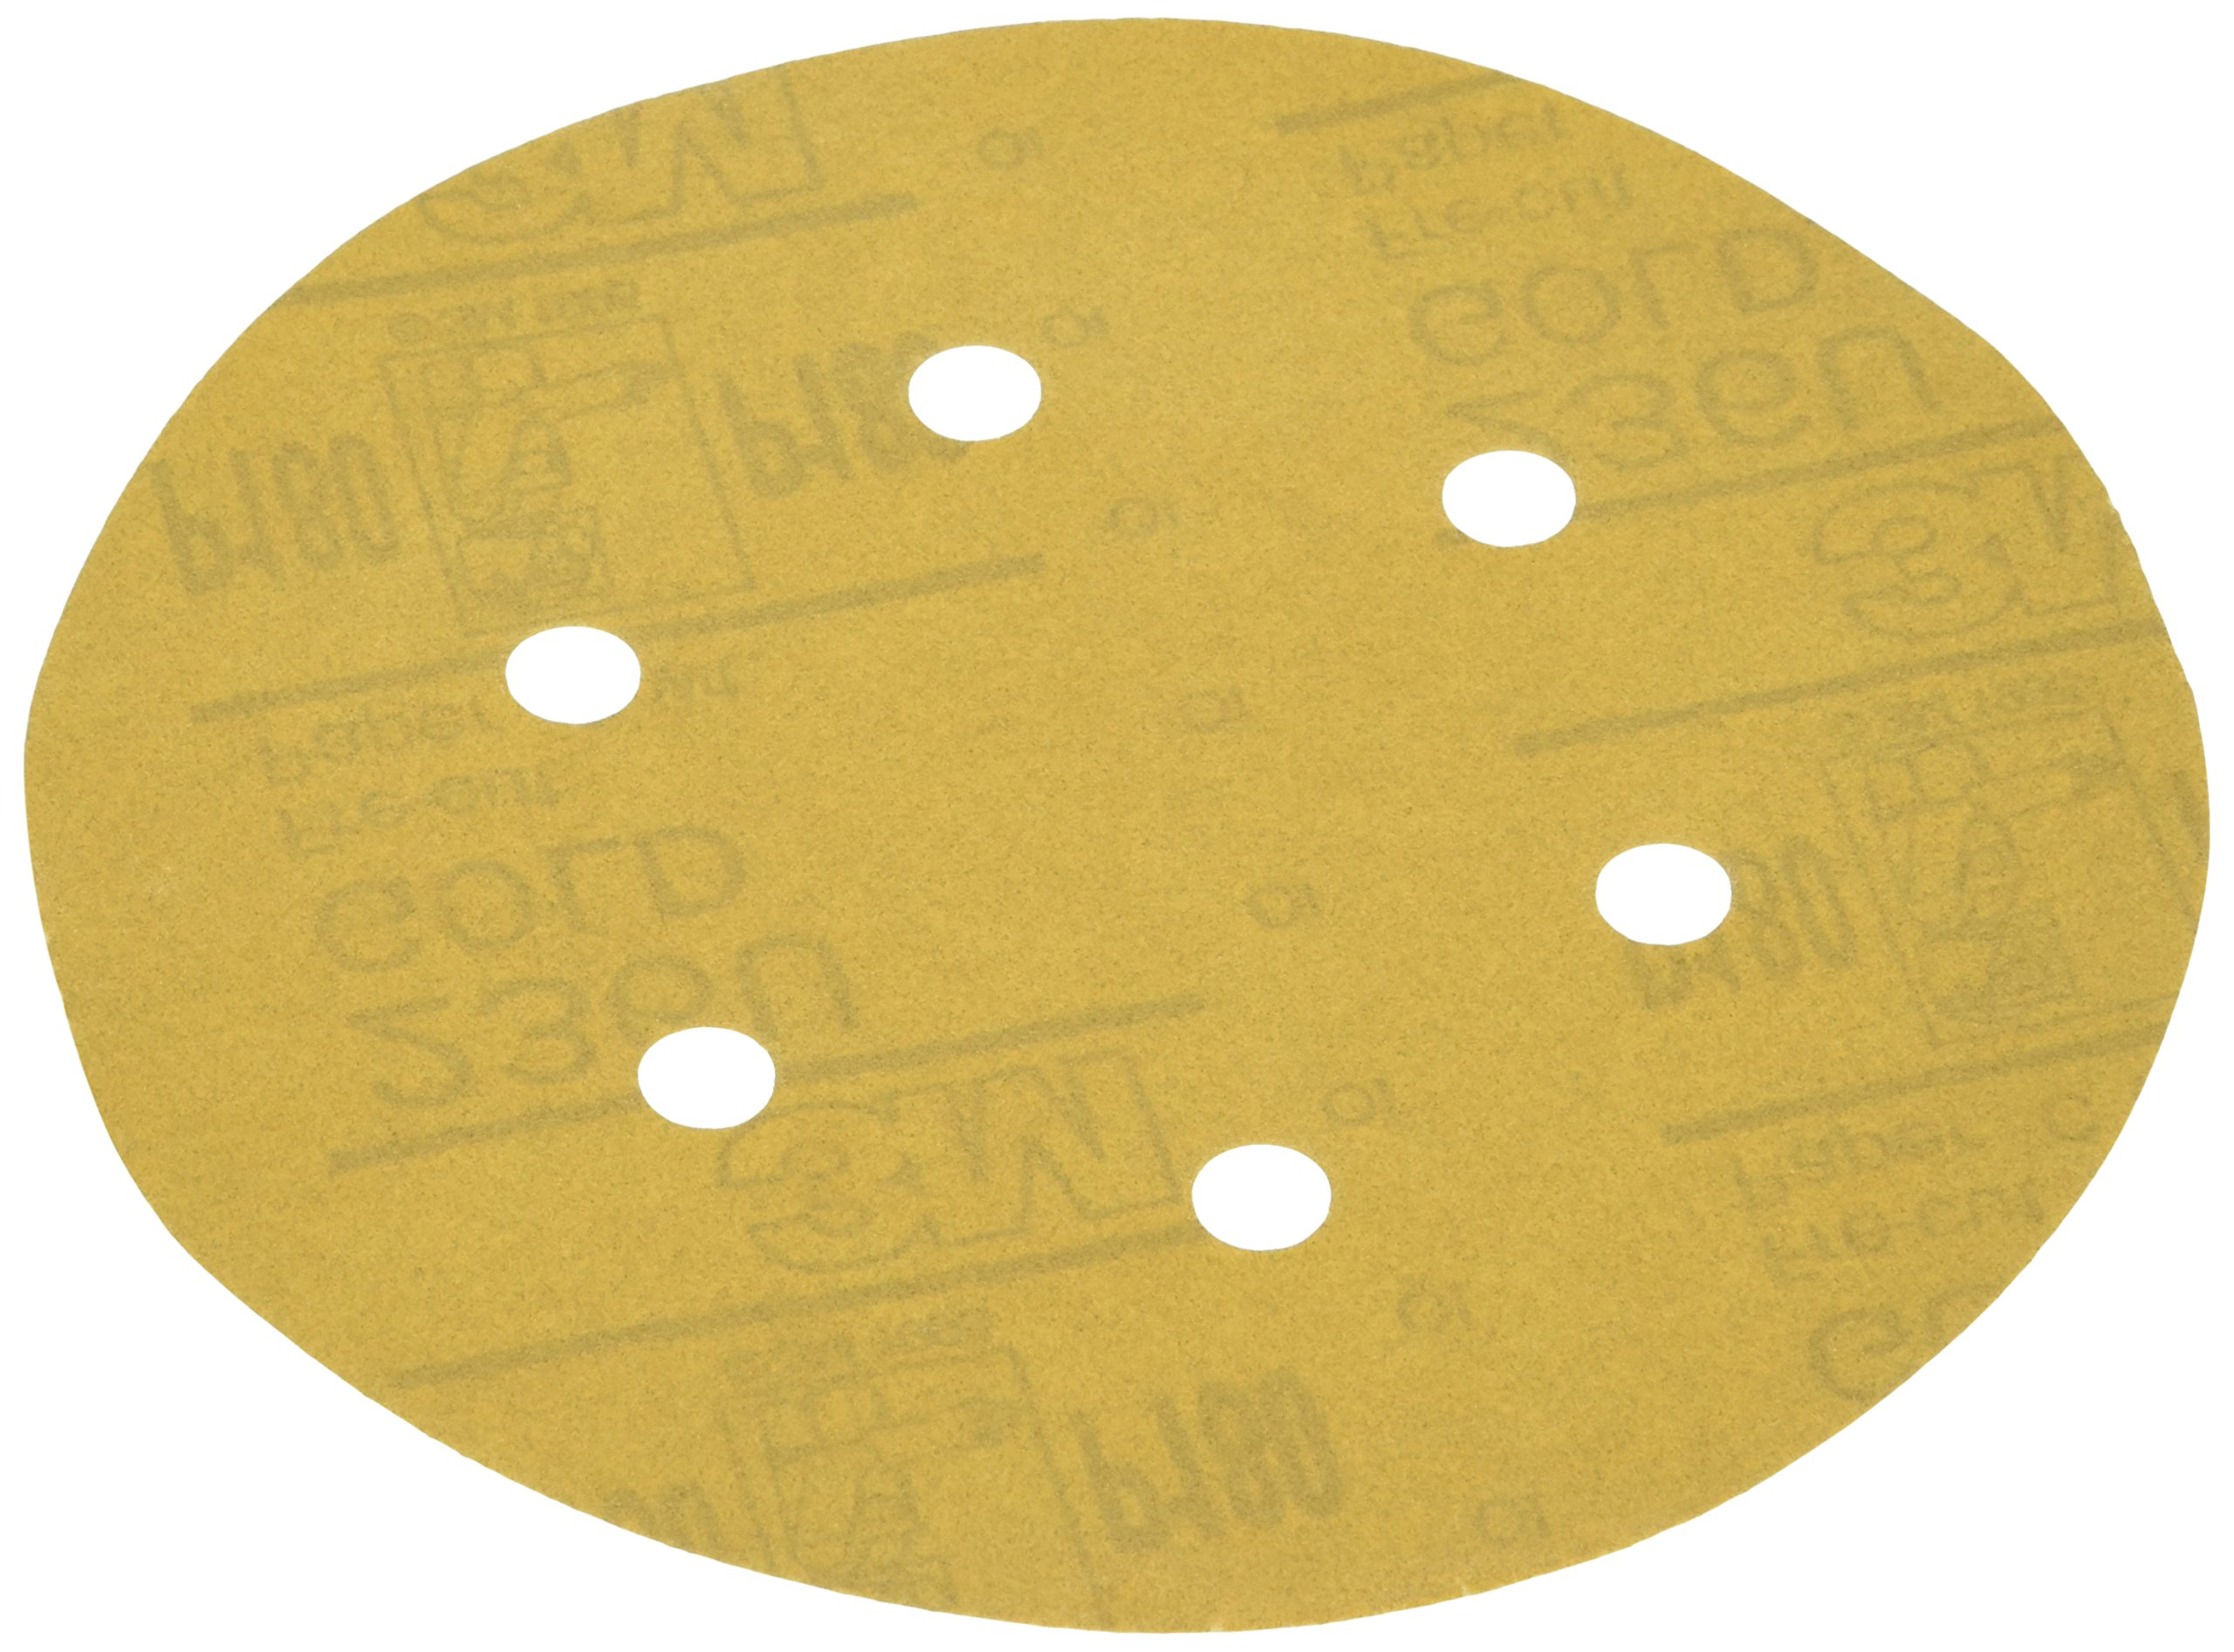 3M 01639 Stikit Gold 6'' P180A Grit Dust-Free Disc Roll by 3M (Image #1)